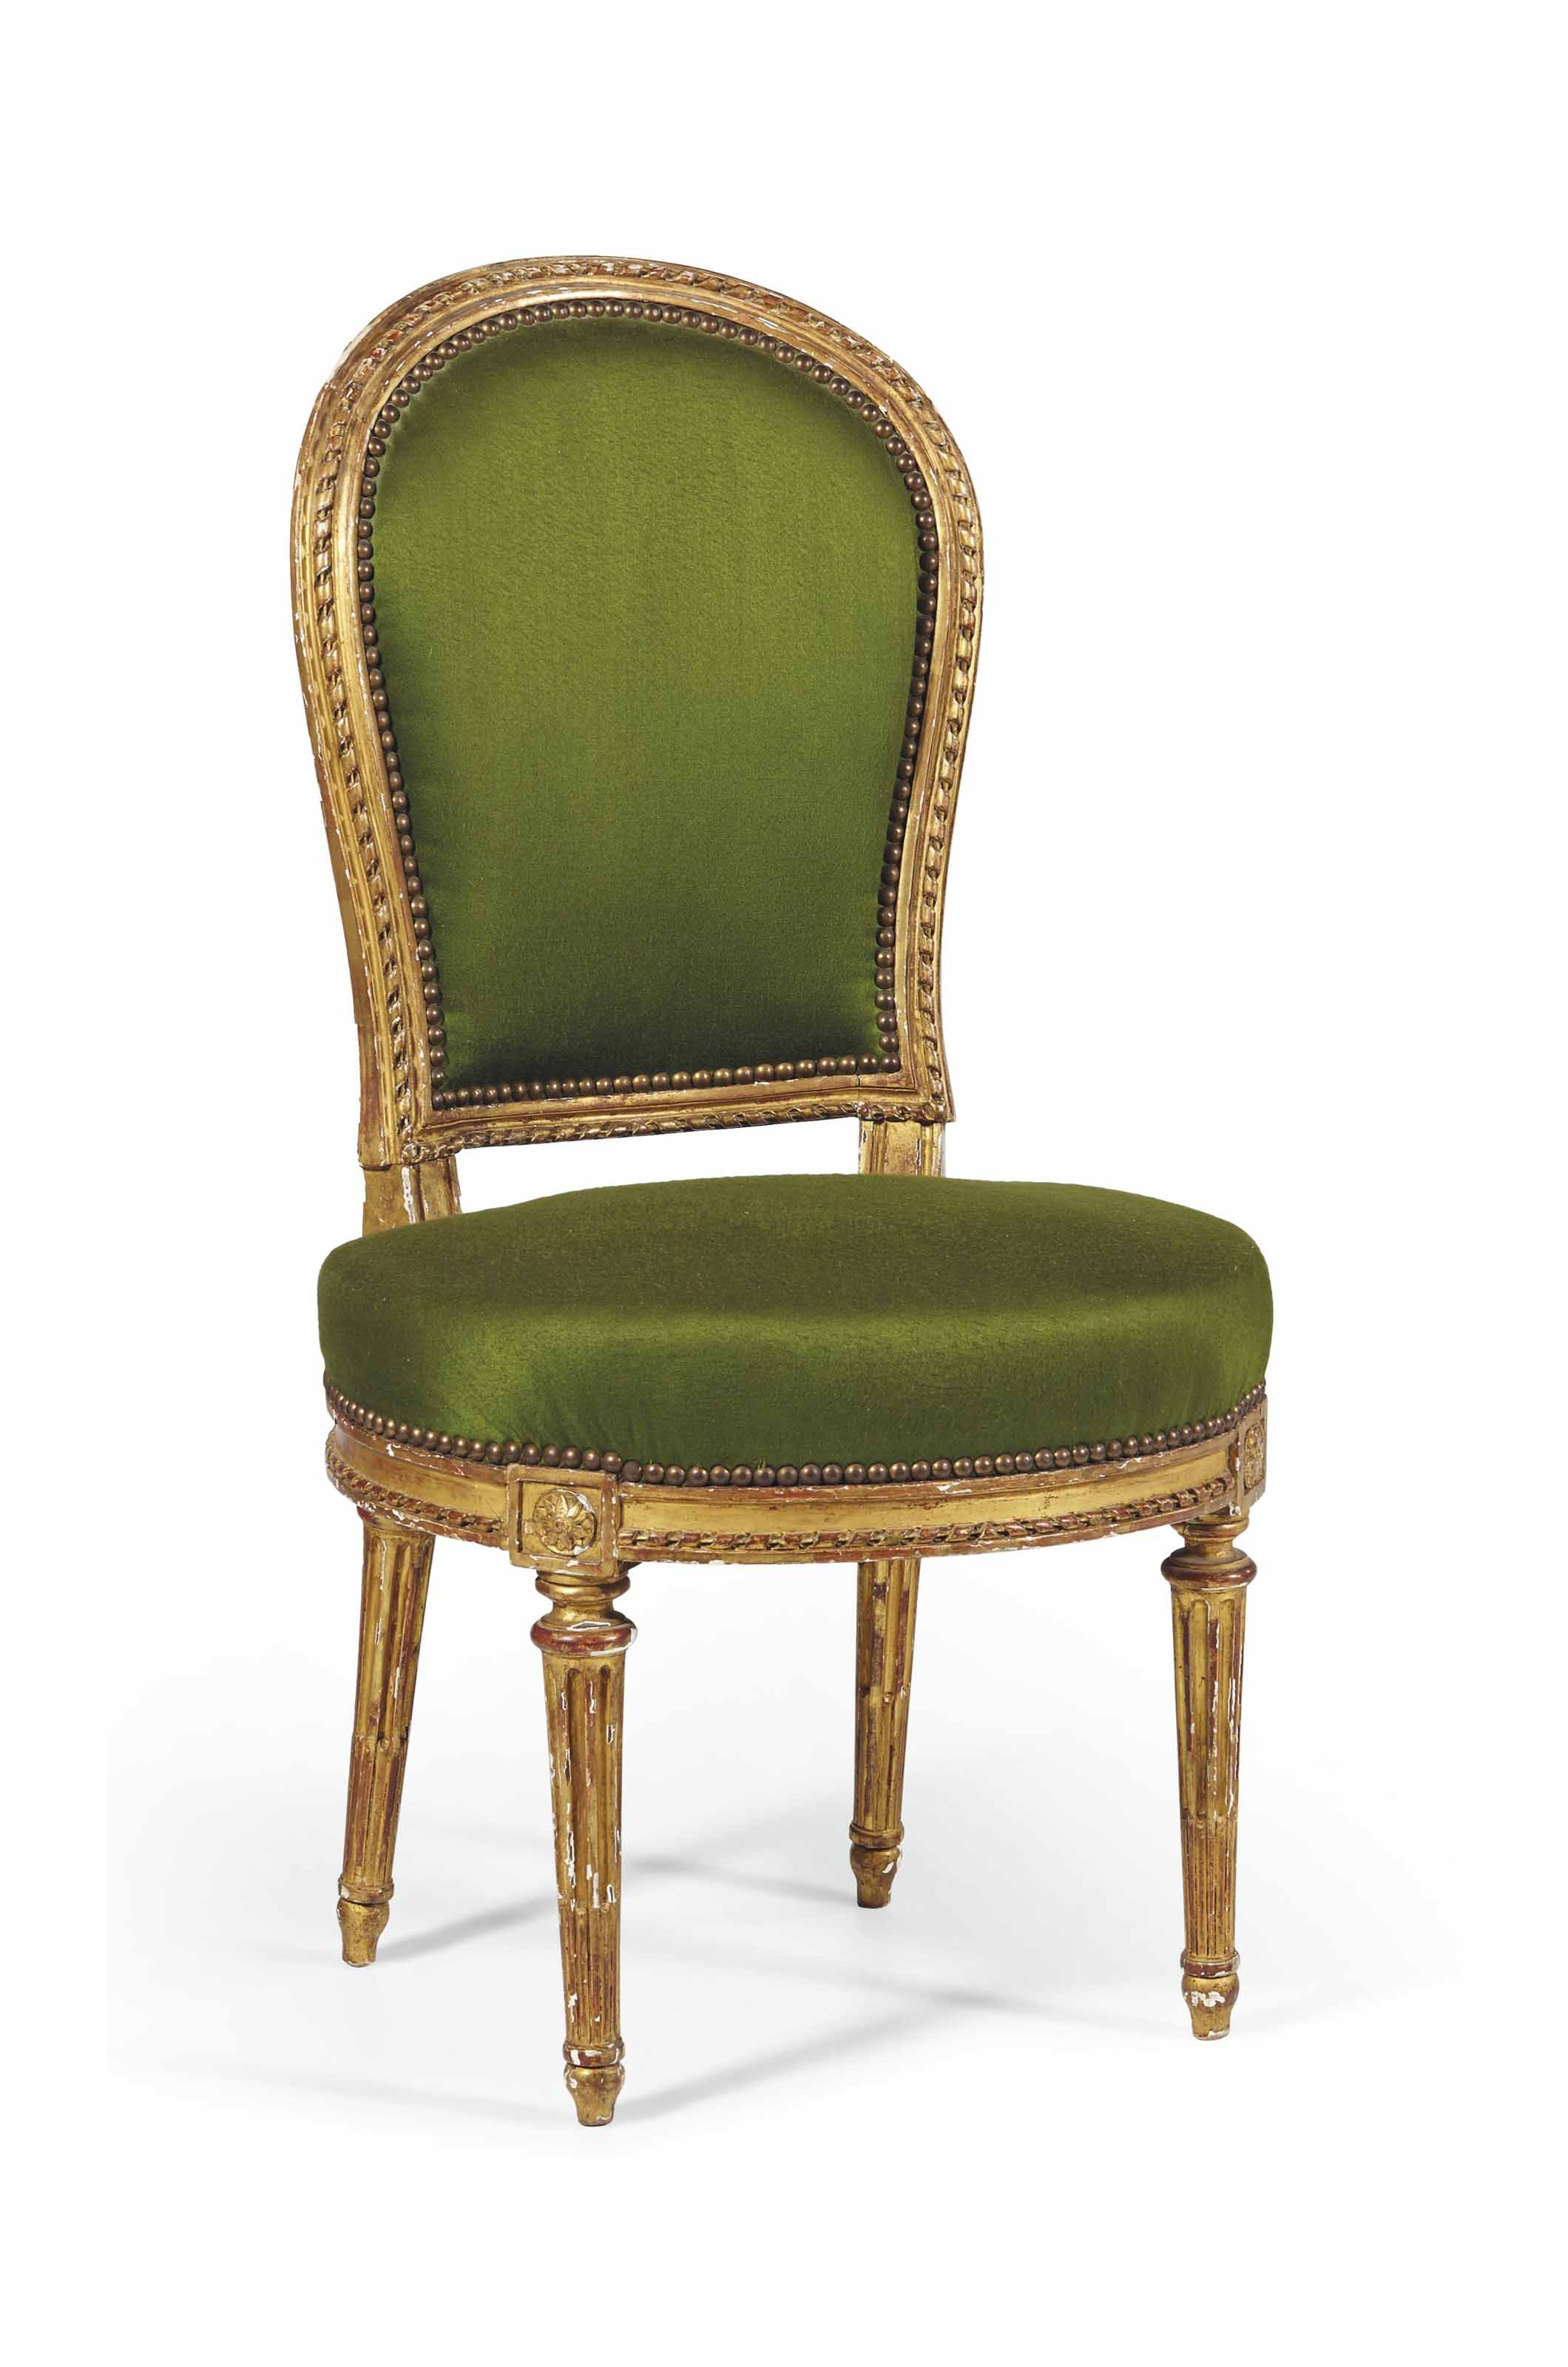 chaise en cabriolet d 39 epoque louis xvi dernier quart du xviiieme siecle christie 39 s. Black Bedroom Furniture Sets. Home Design Ideas